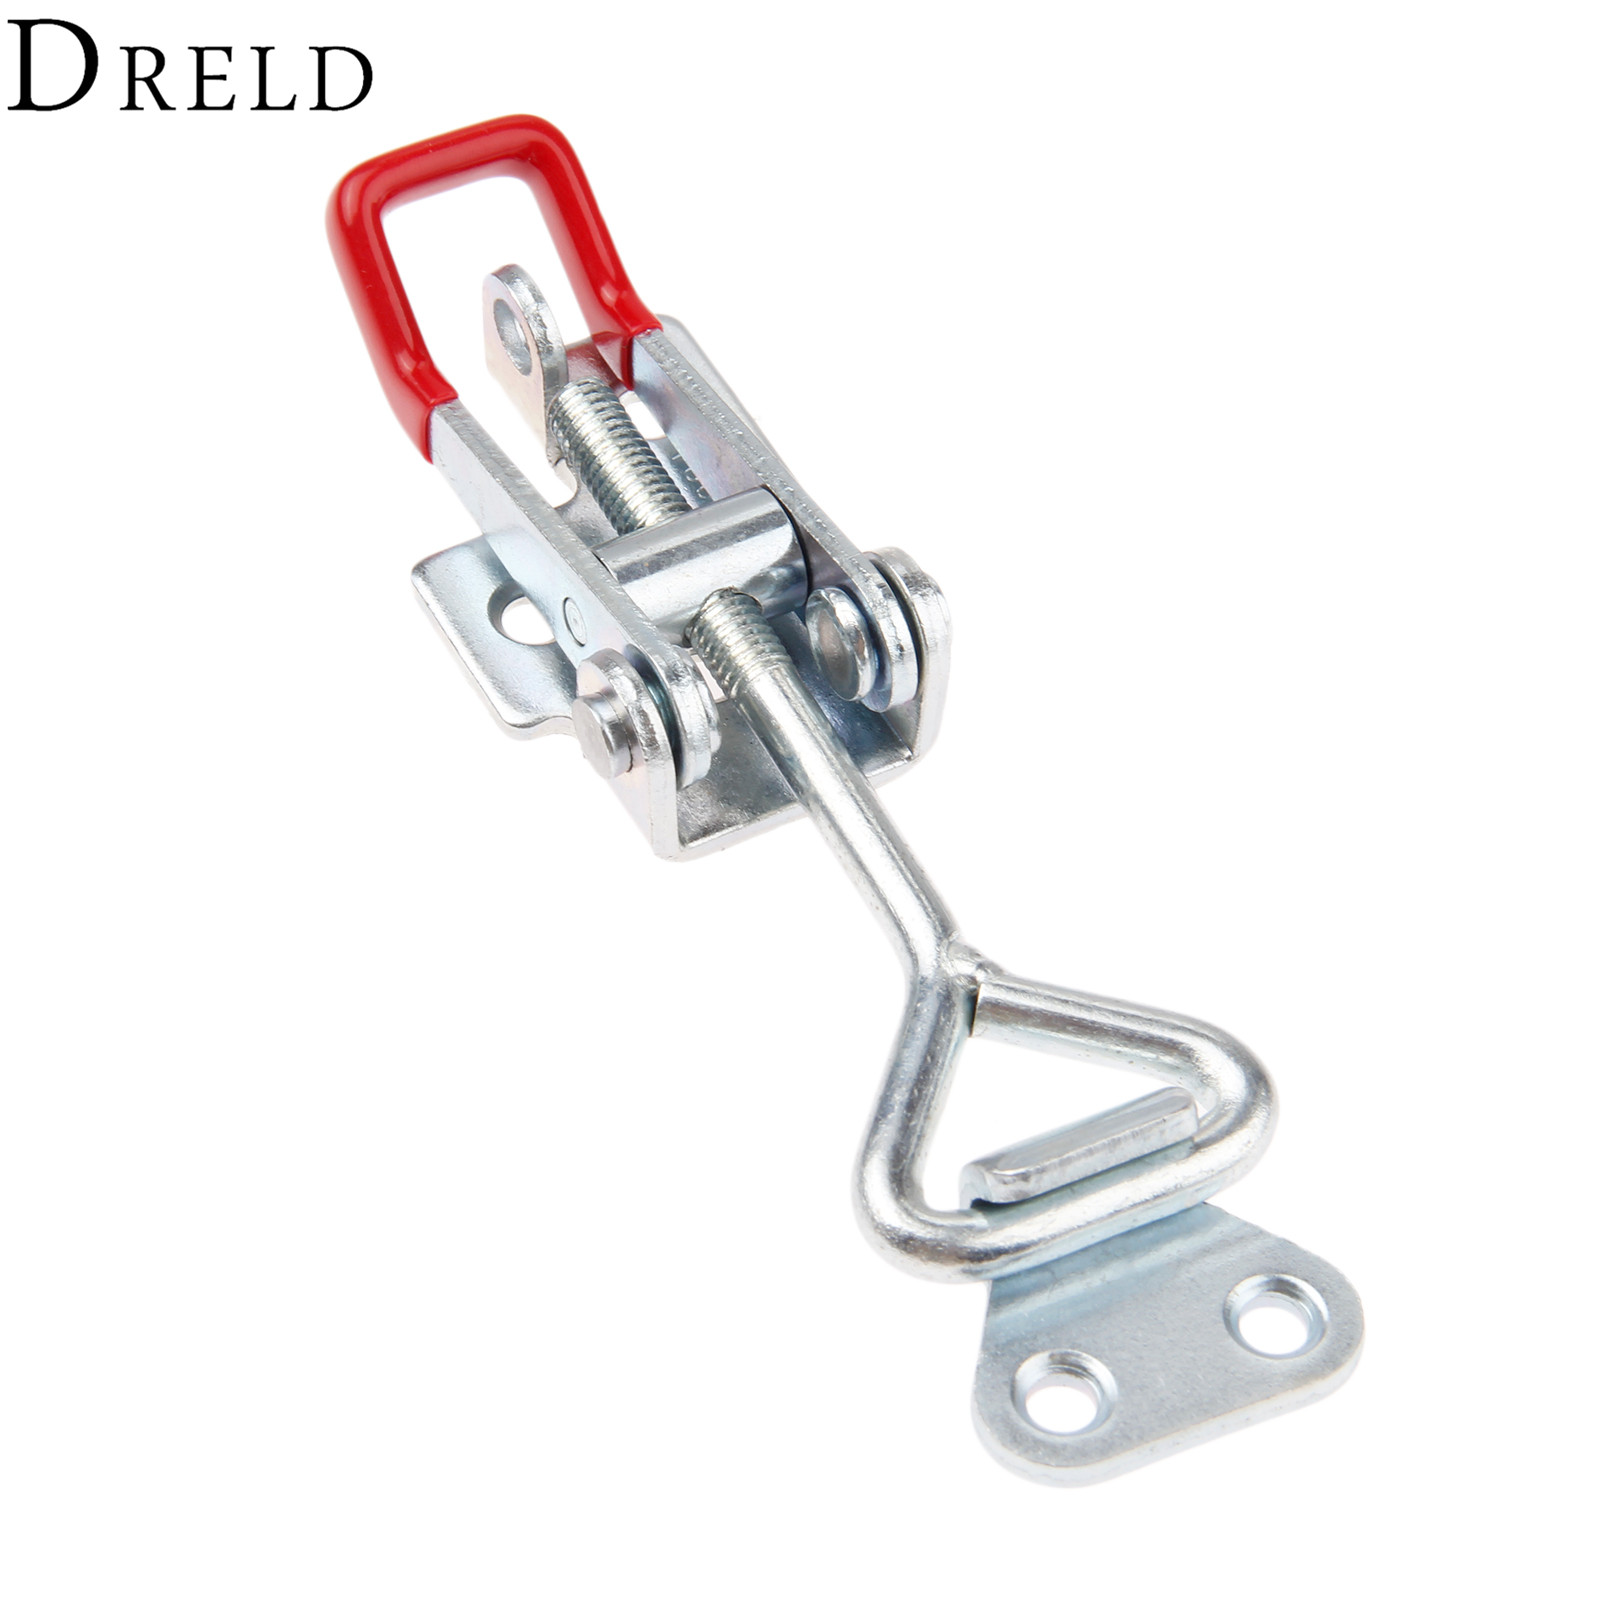 DRELD 1pcs GH-4002 Parighasana Toggle Clamp Clip 200KG/440Lbs Holding Capacity Quick Metal Latch Hand Tool Fixture Clamp quick clamp gh 36330 quick fixture